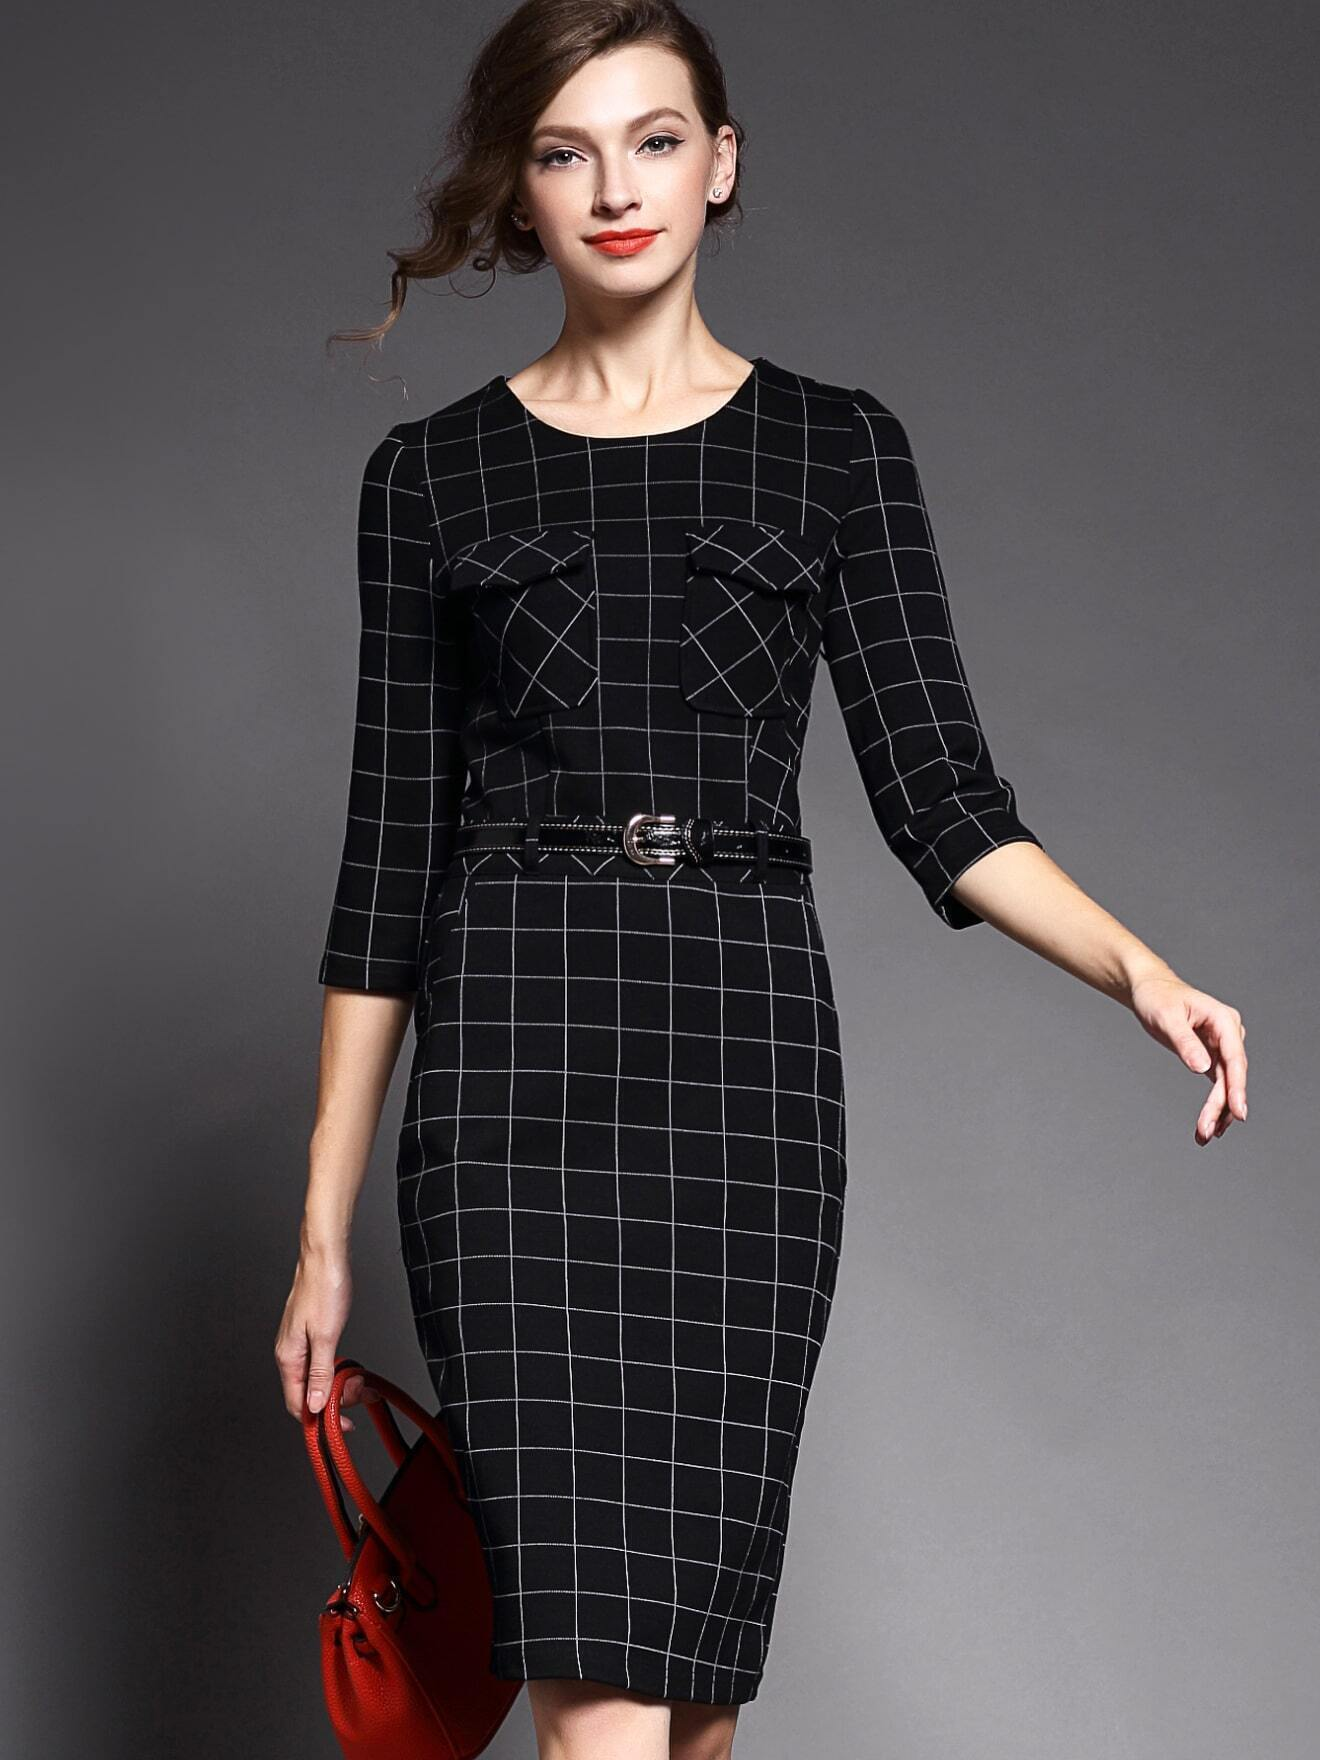 Black Round Neck Length Sleeve Knit Drawstring Print Dress